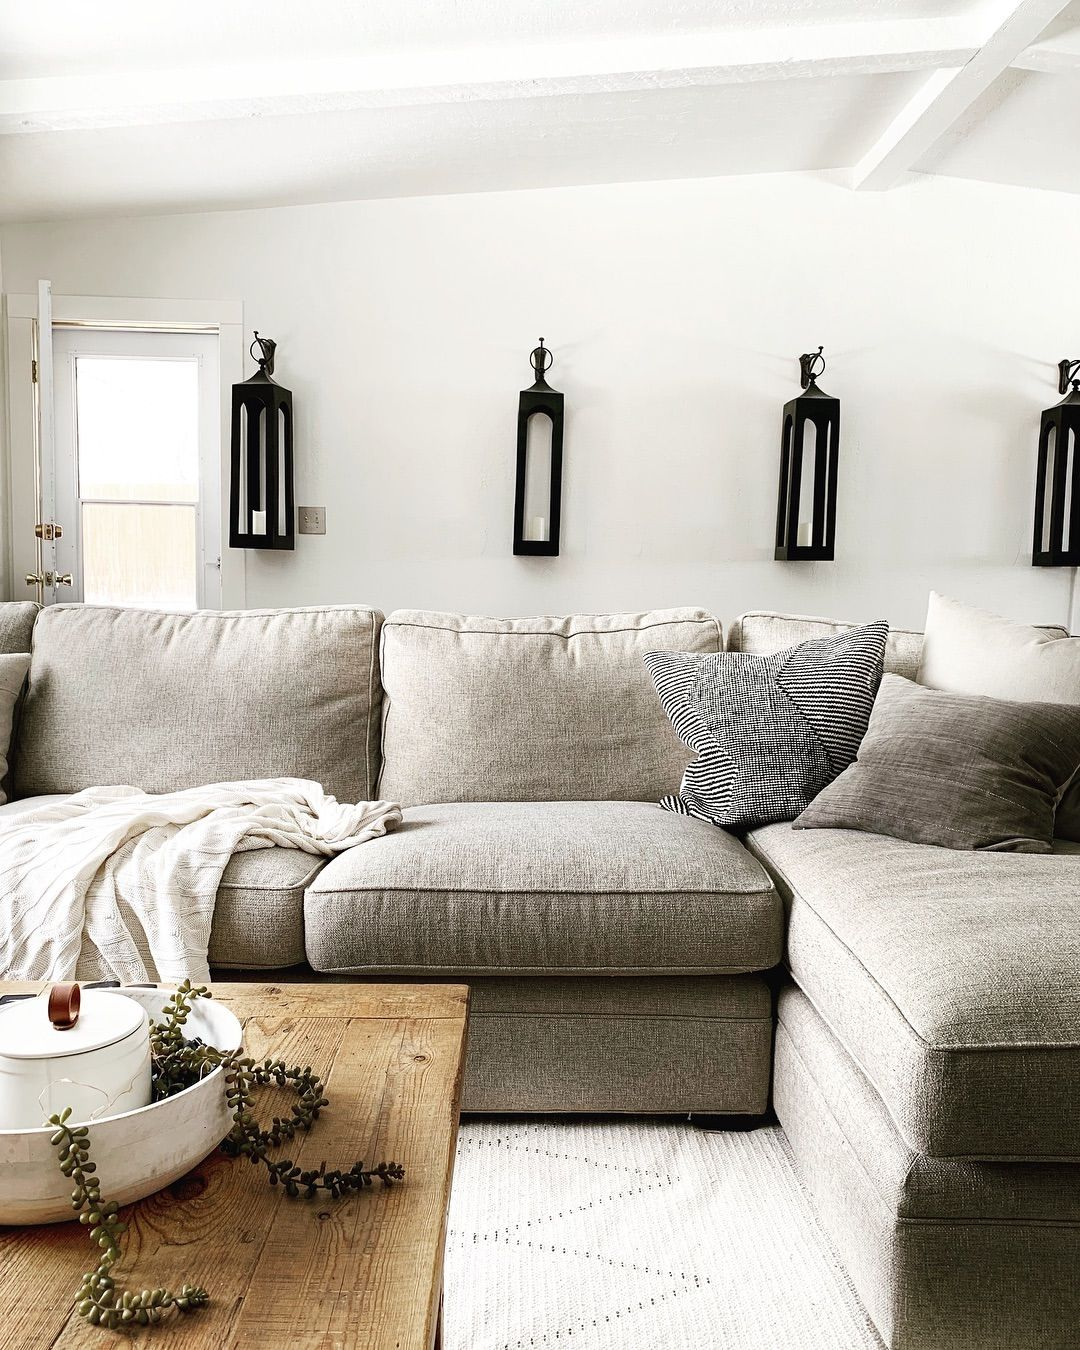 Pin On Insta Land Kelsey Loya Come Say Hi #rustic #and #modern #living #room